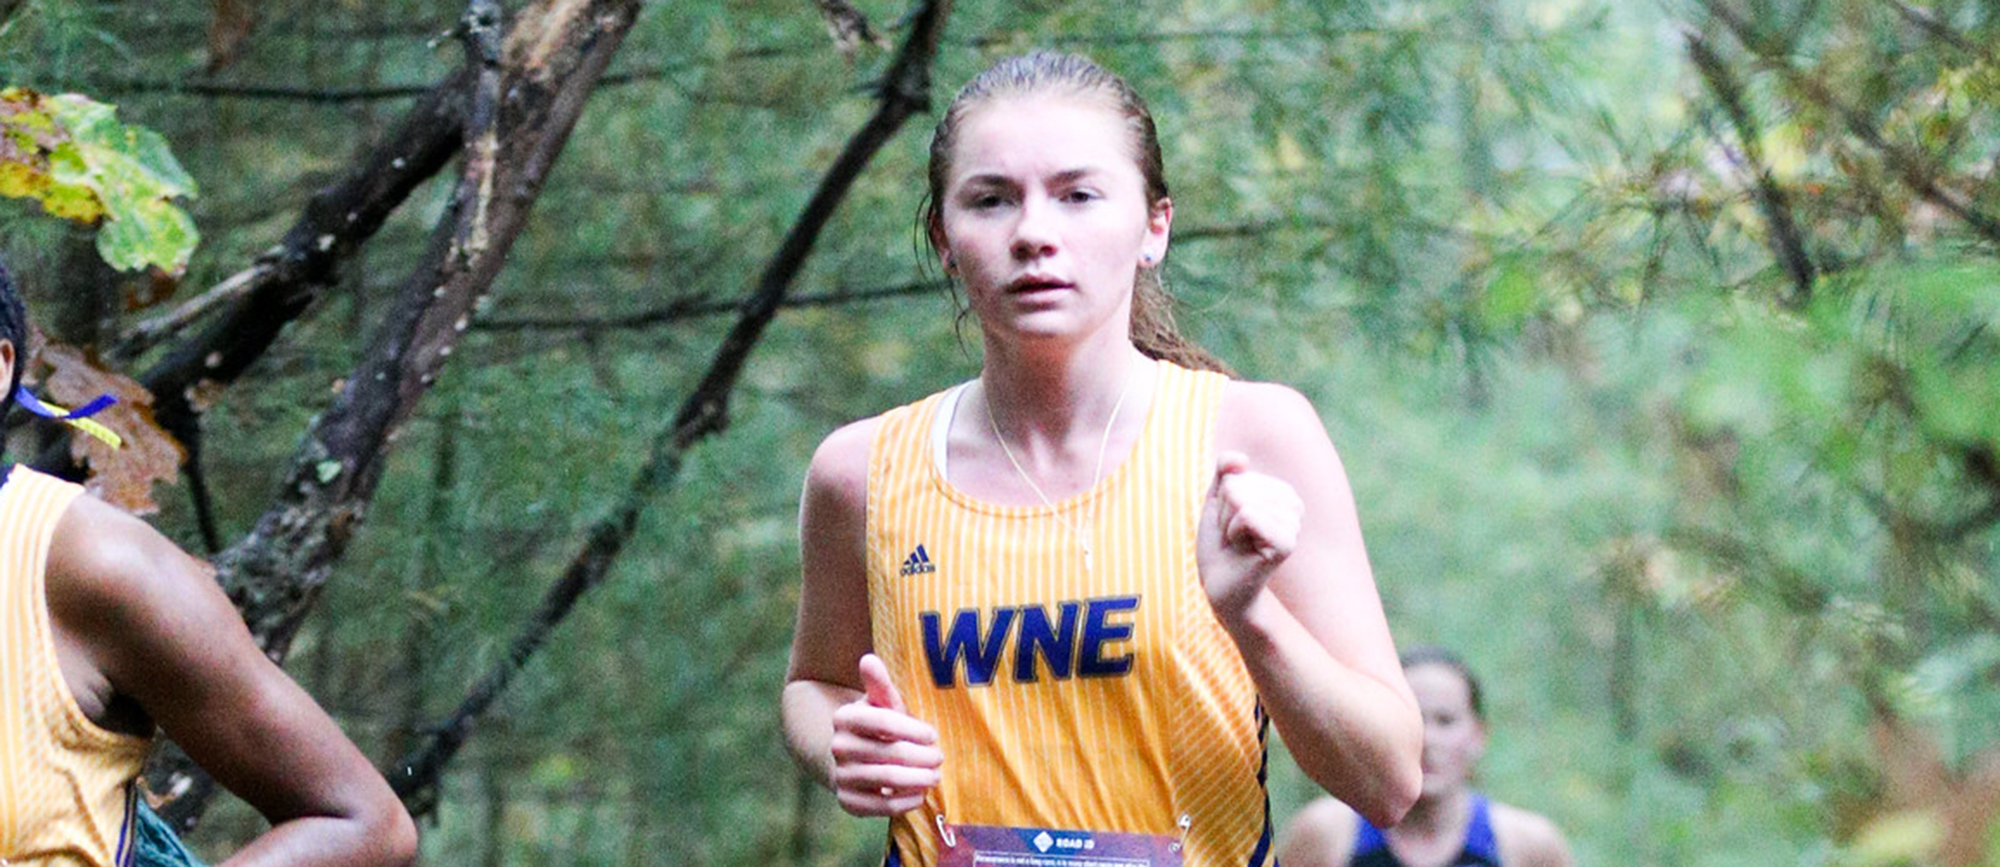 Women's Cross Country Places 10th at Western New England Invitational